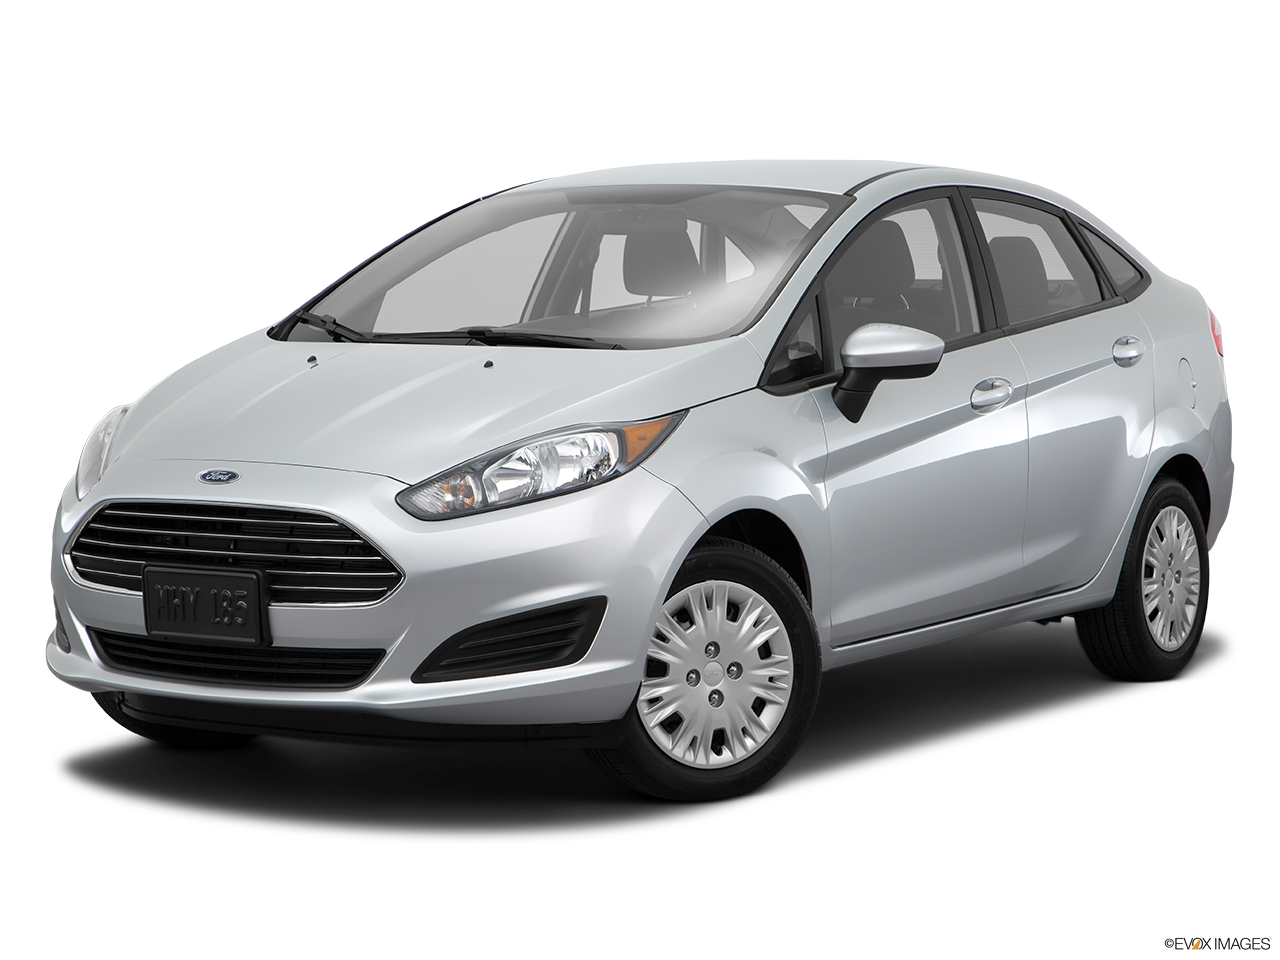 Test Drive A 2016 Ford Fiesta at Hoffman Ford in Harrisburg